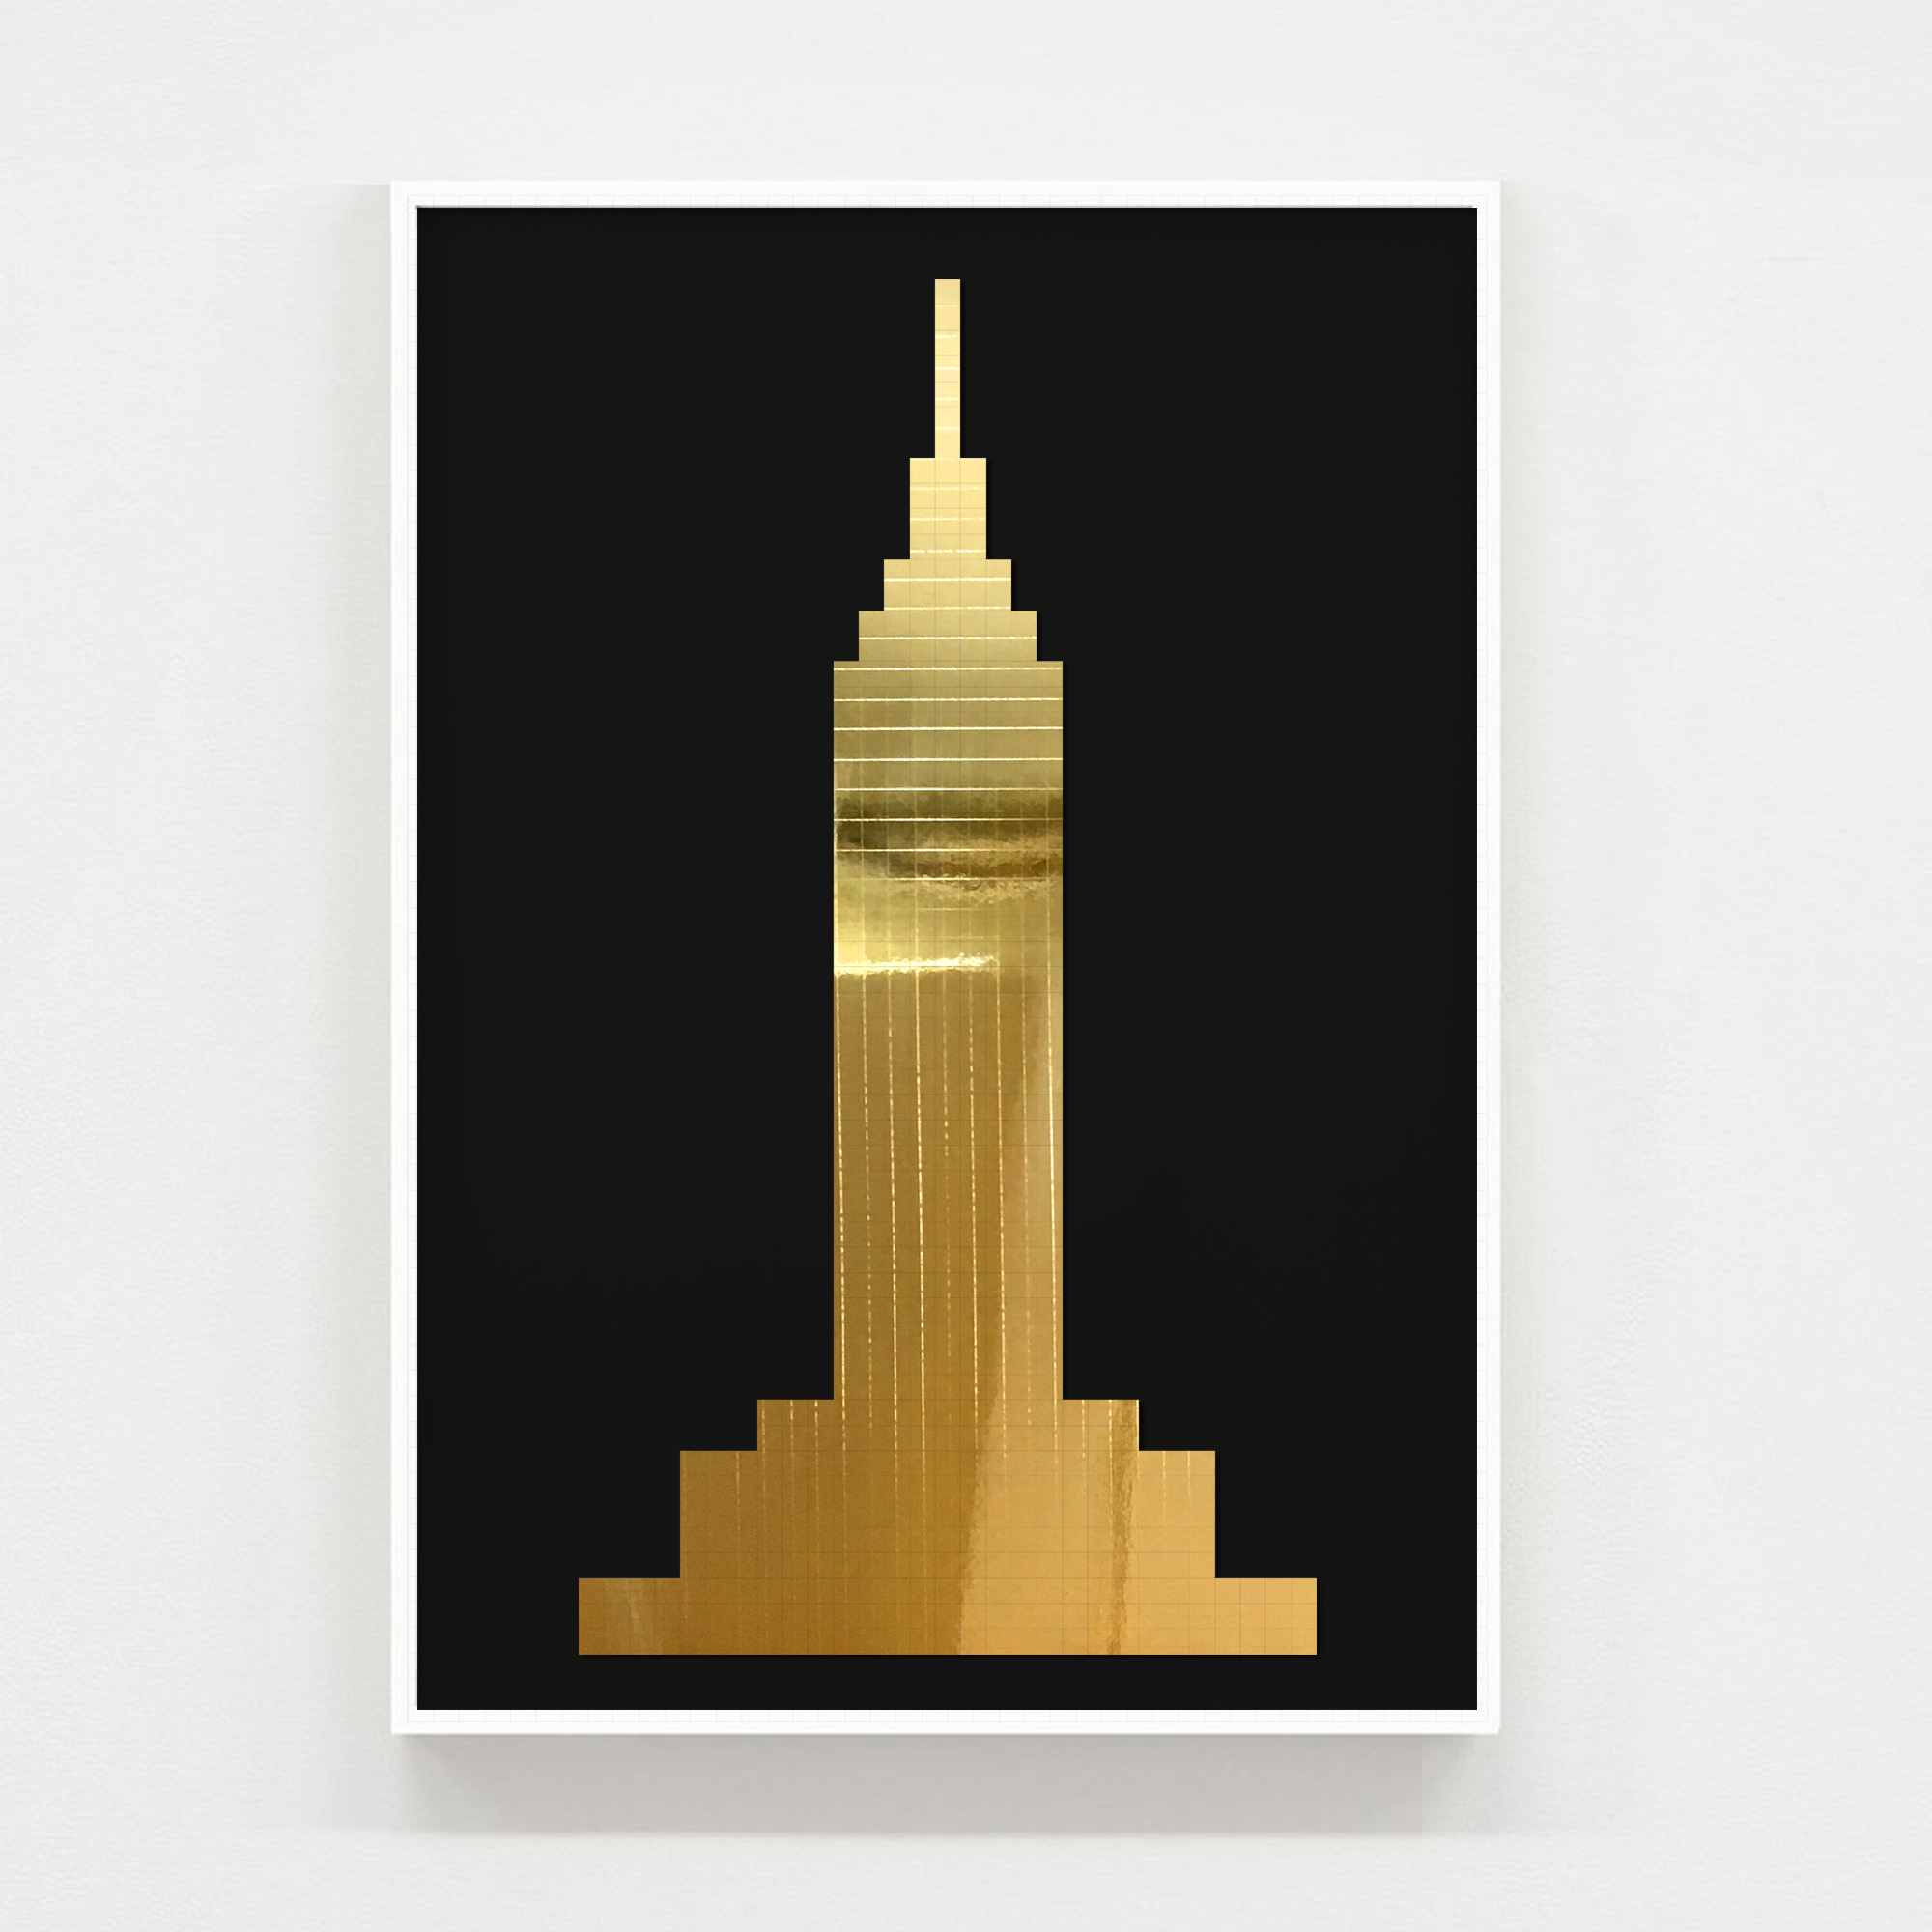 empire state - A2 size : 42cm x 59.4cmSigned and numbered with certificate of authentification.PRICE: £500